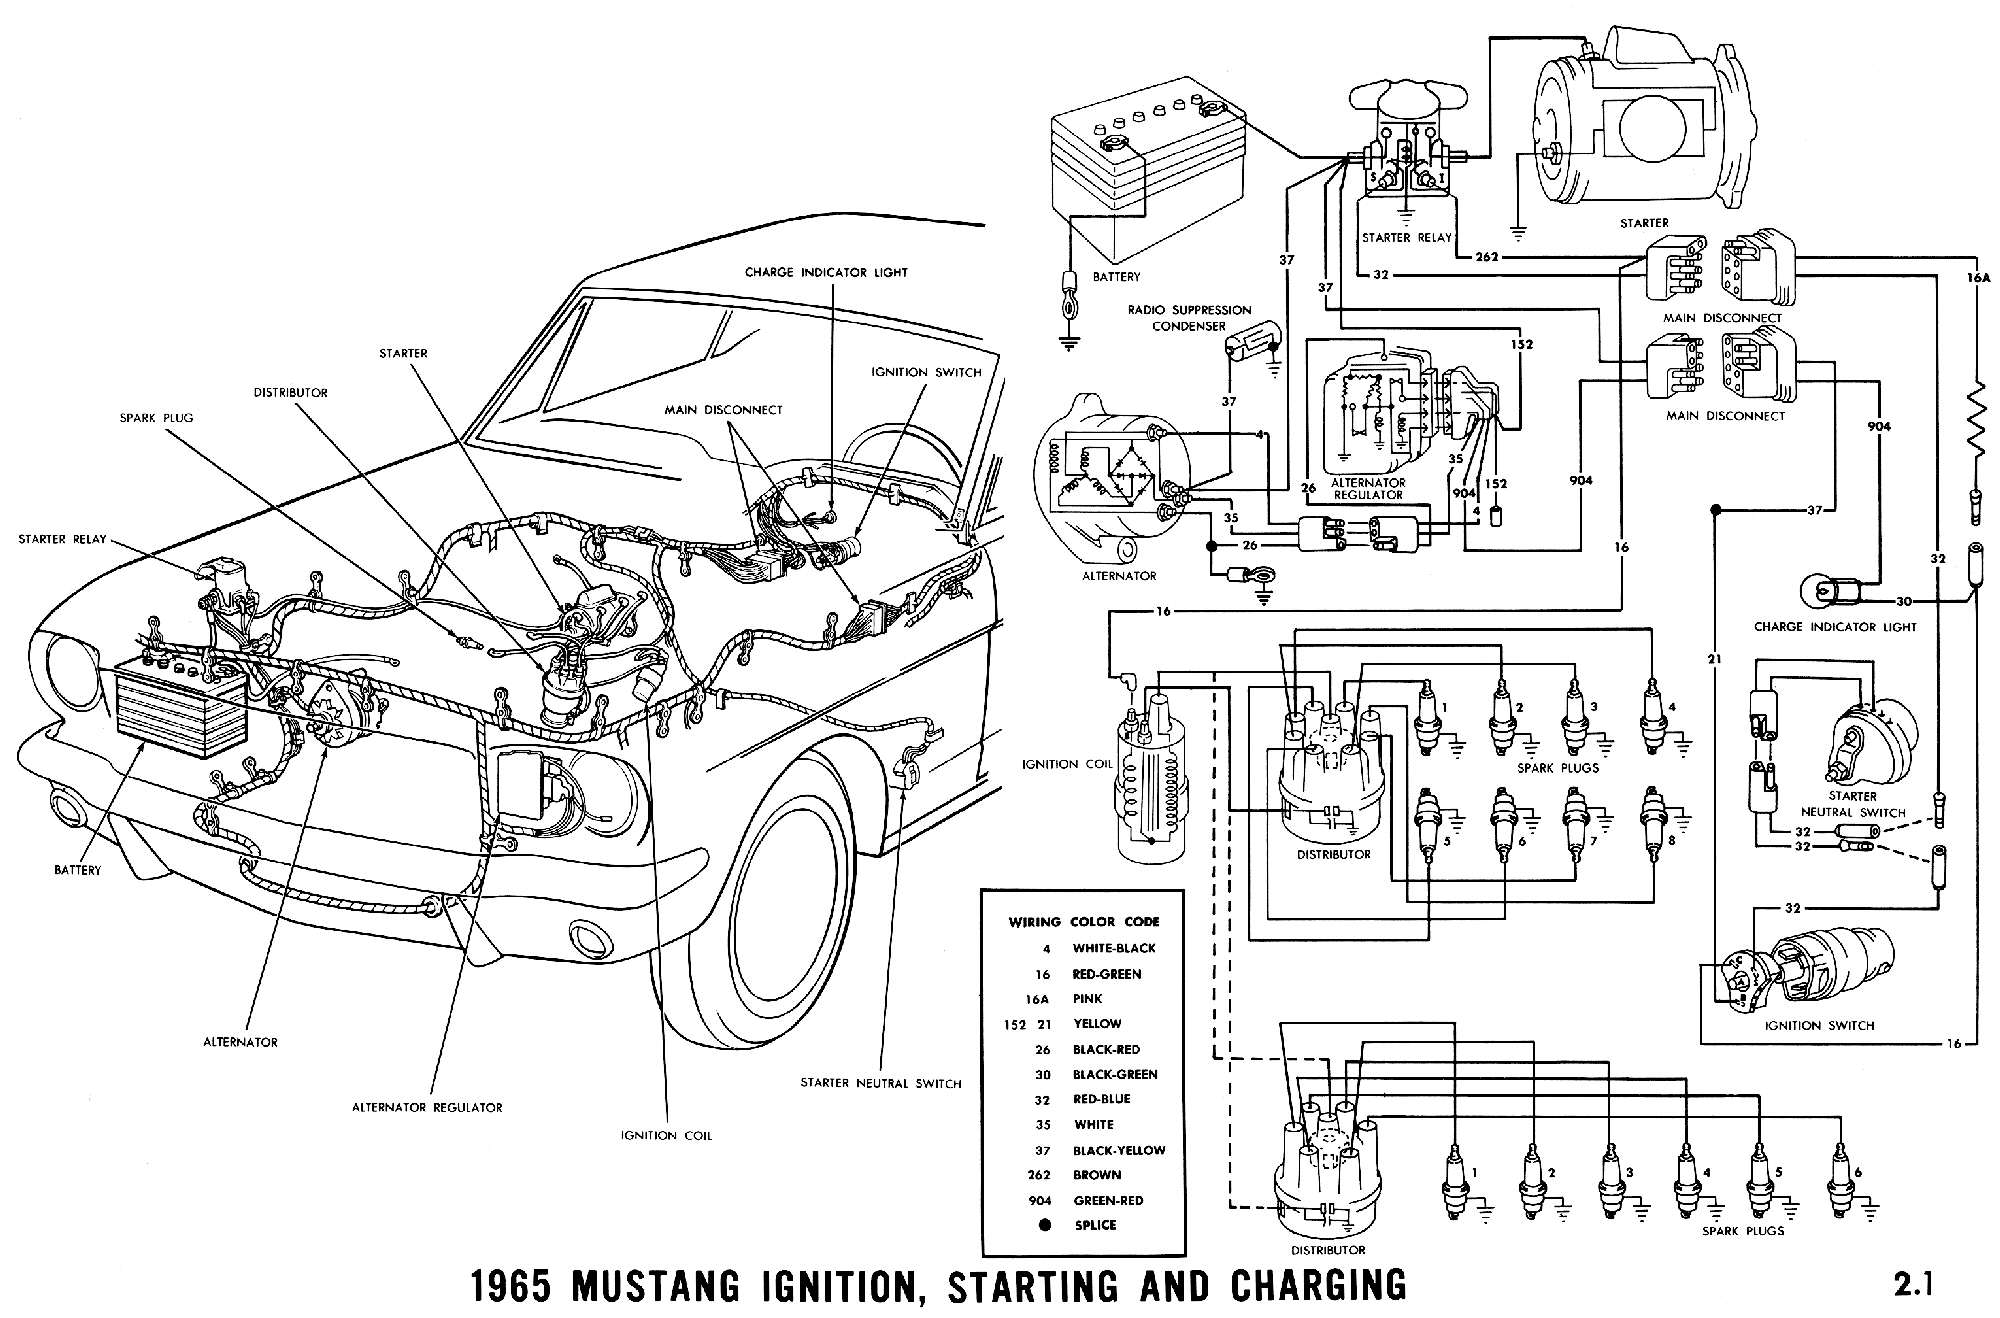 1965 Mustang Wiring Diagrams Average Joe Restoration Lighting Circuit Diagram For Two Lights Ford F100 A Charging Pictorial And Schematic